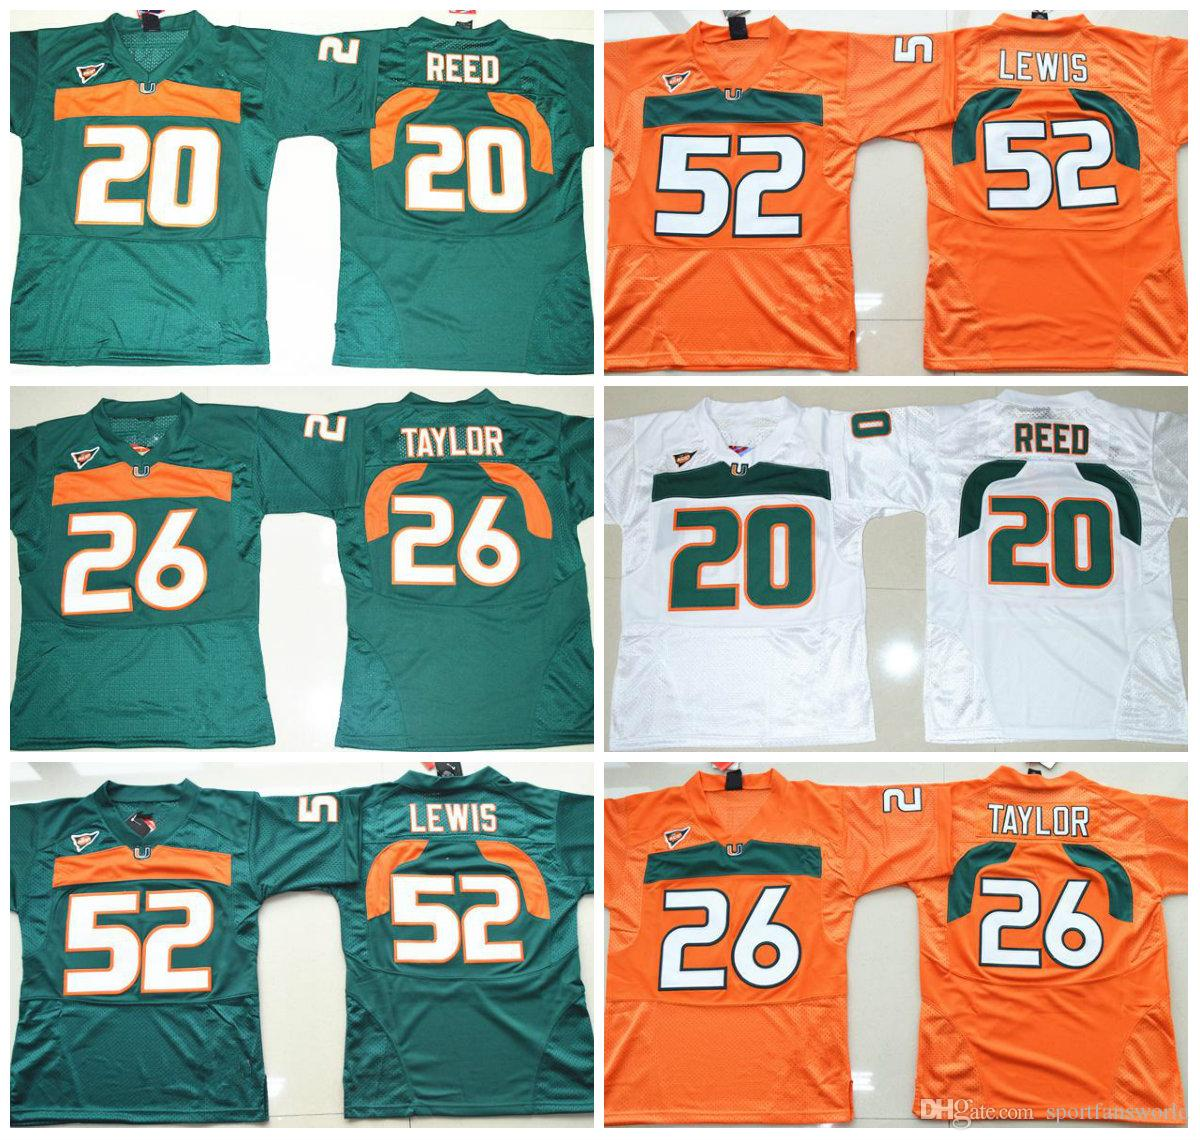 hot sale online 12fa5 137b8 good miami hurricanes 20 reed green jersey 09602 e4c35